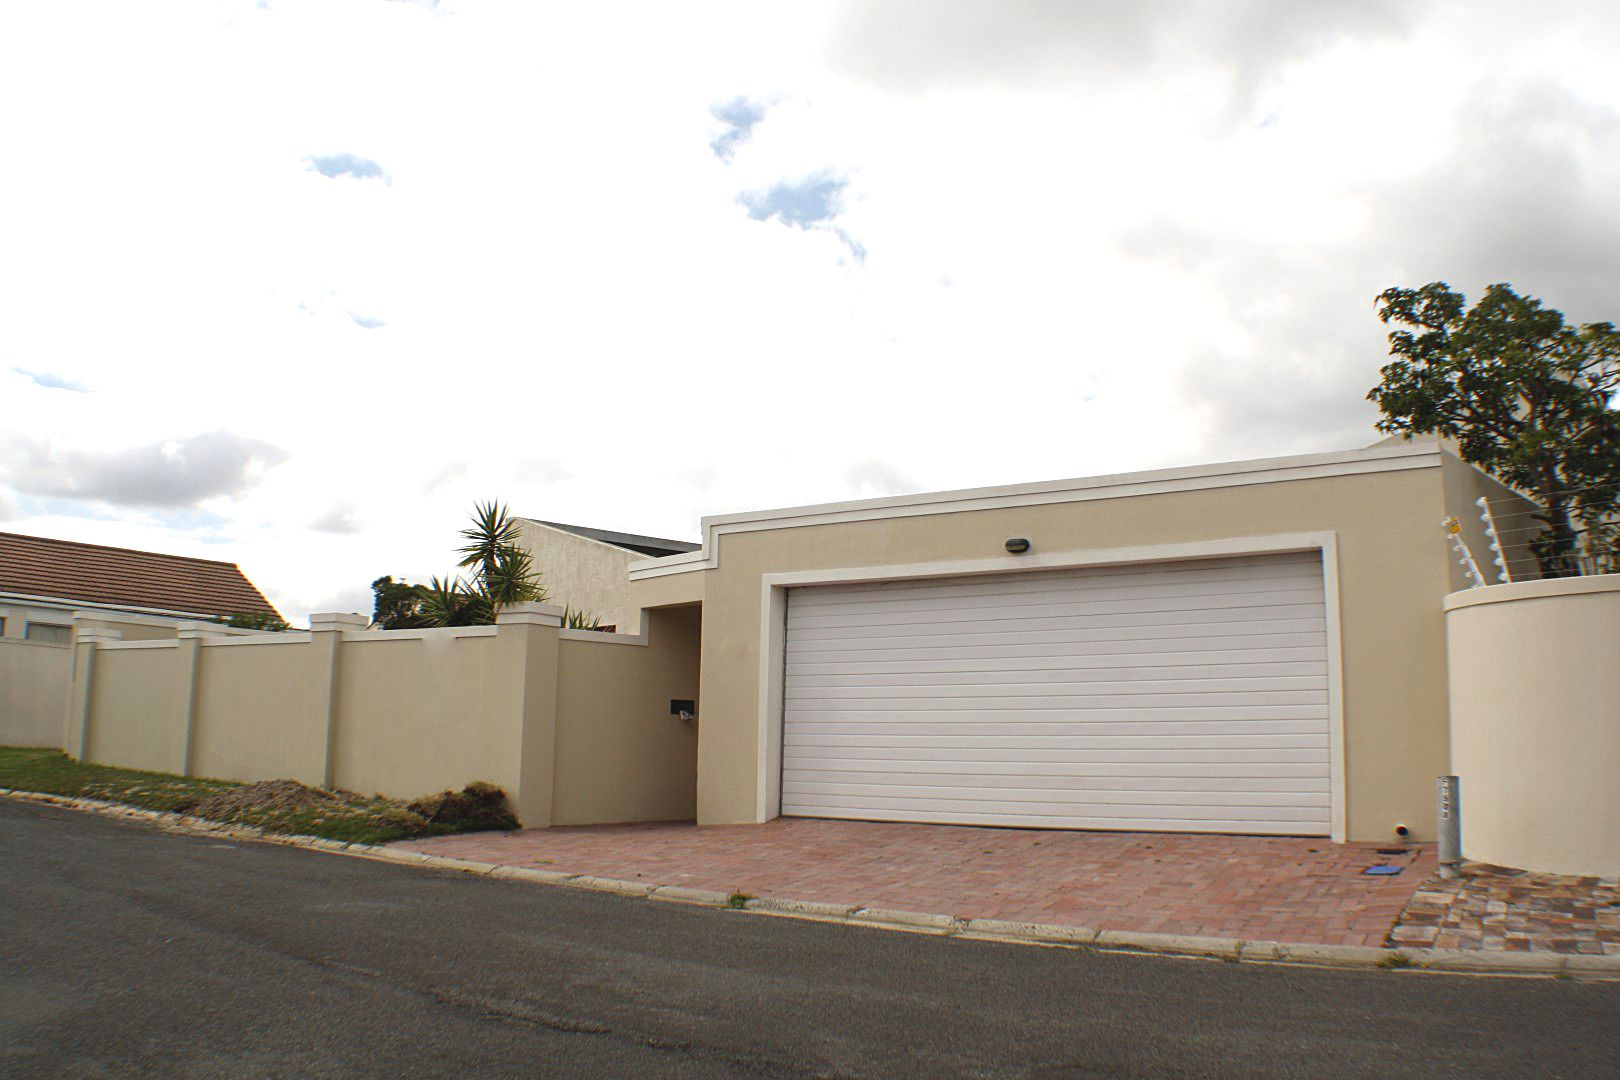 4 Bedroom House for sale in Edgemead ENT0067558 : photo#17